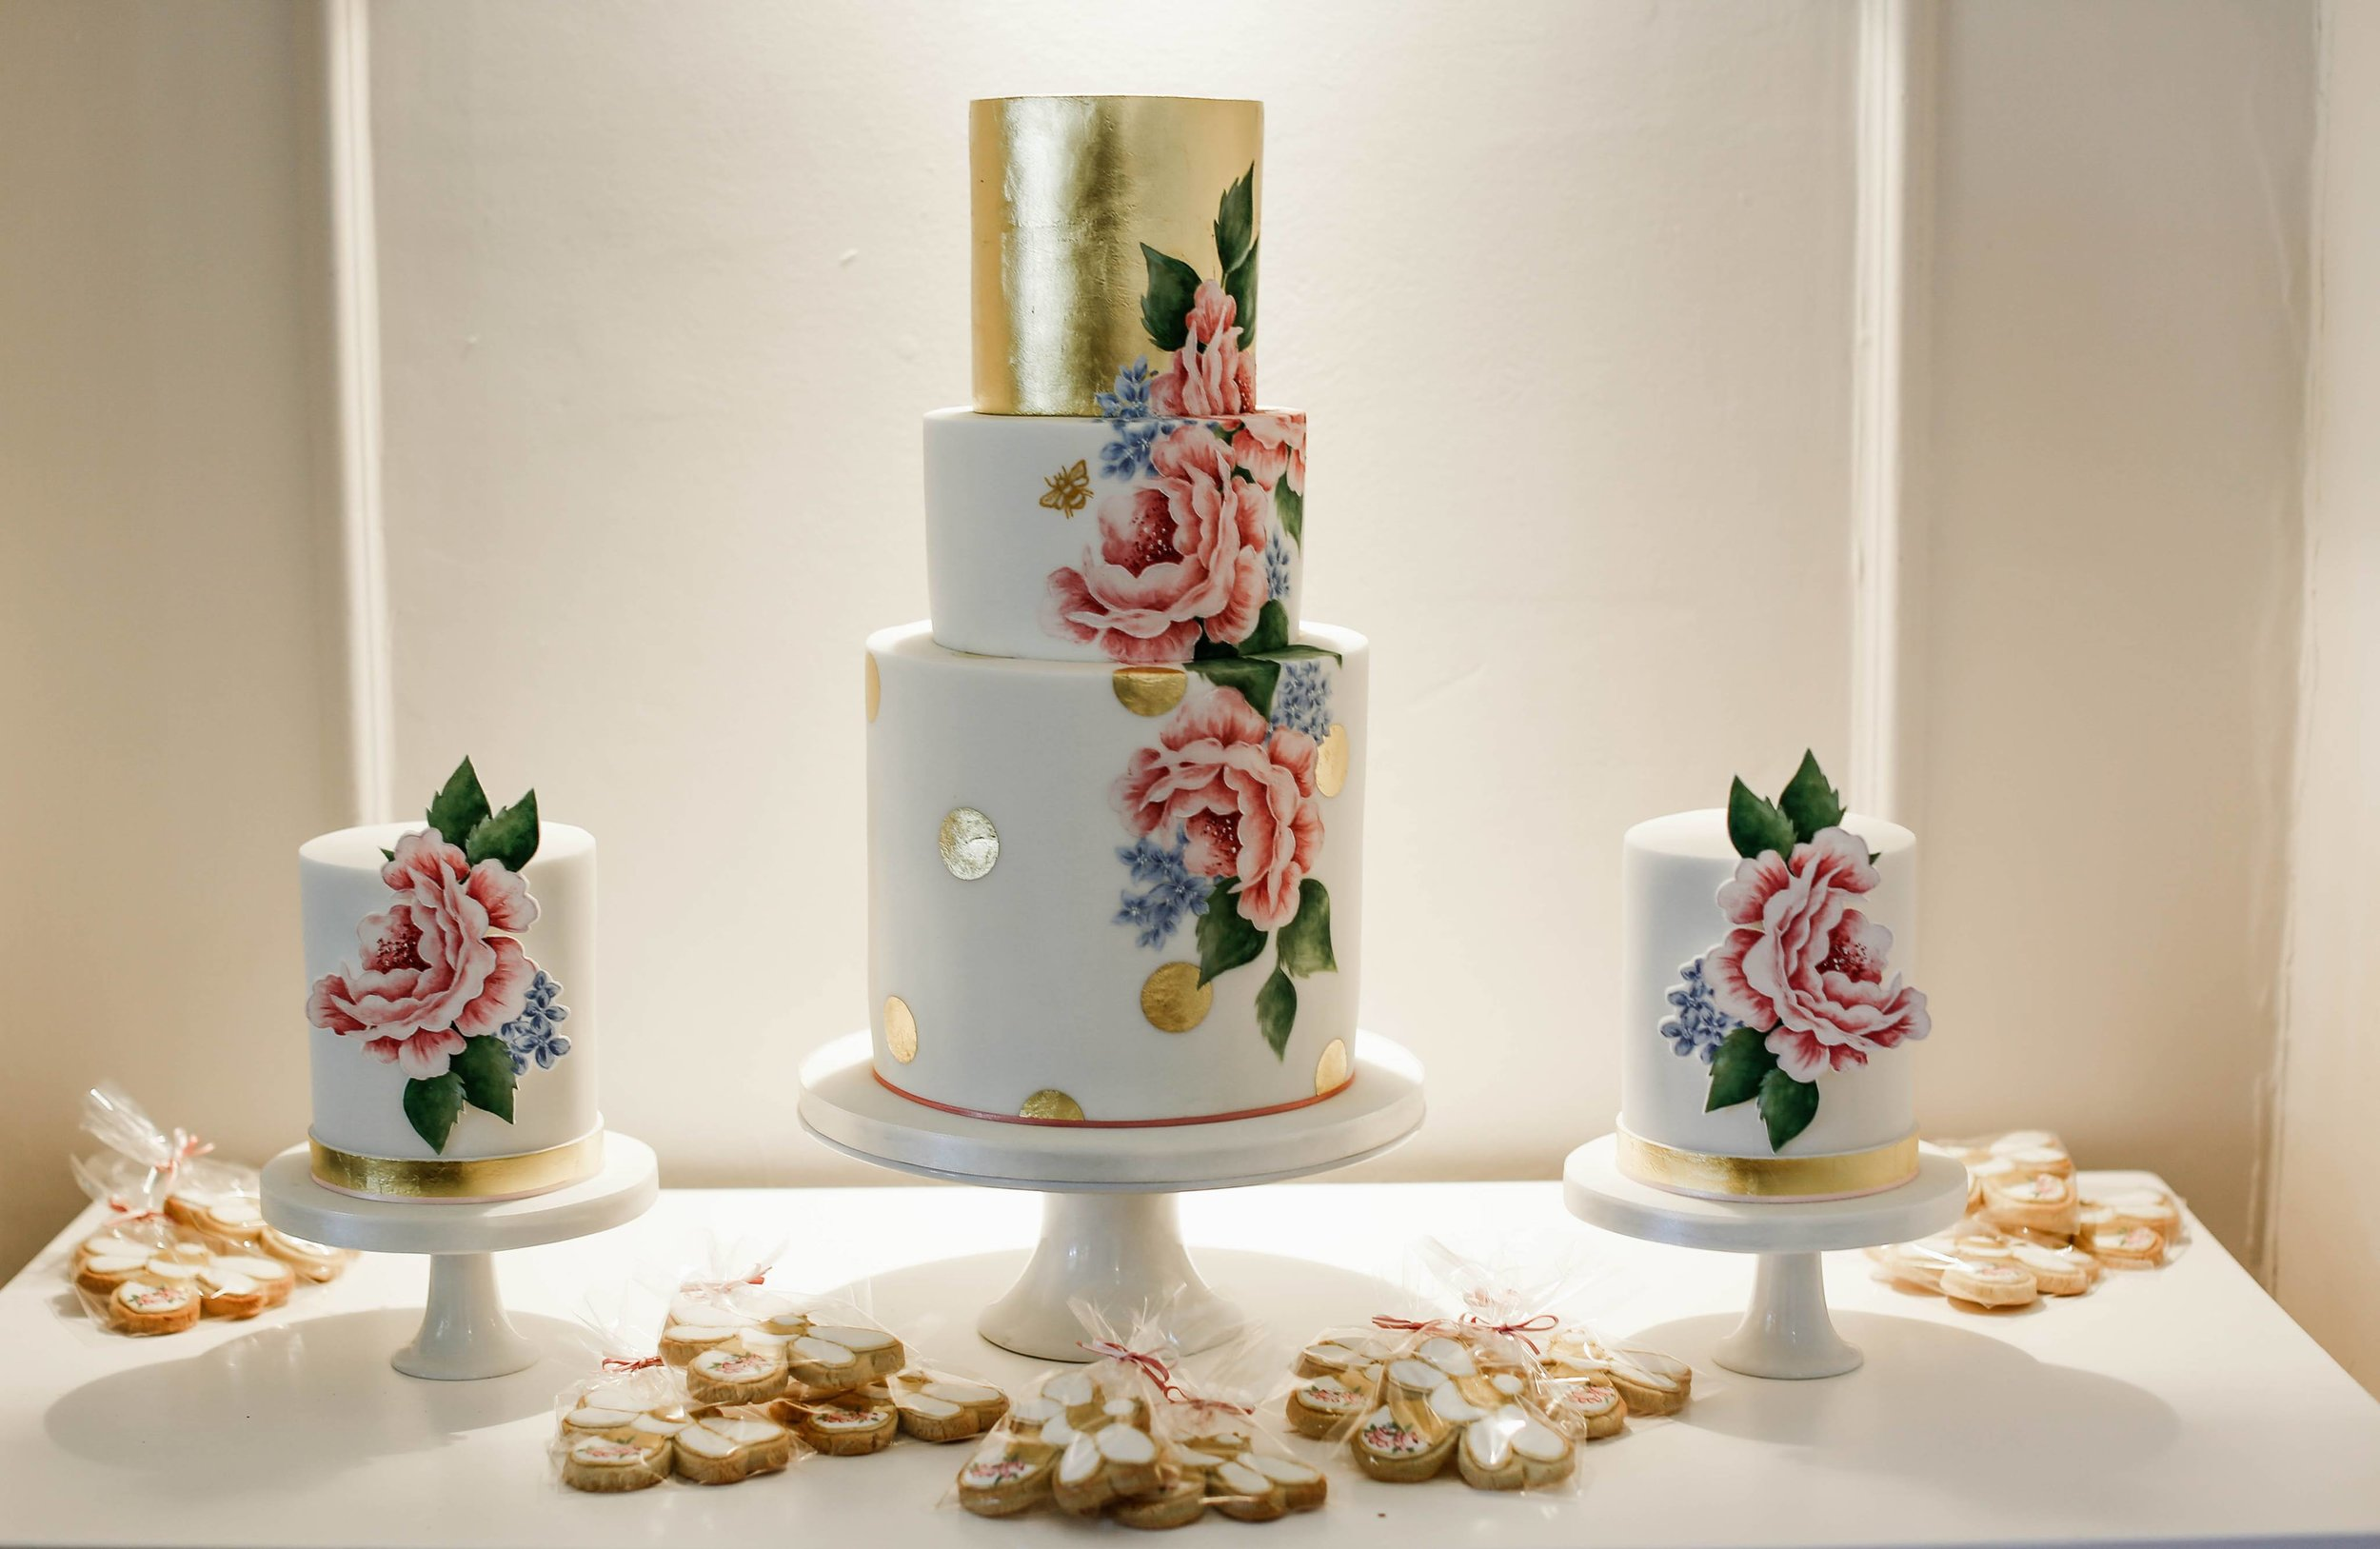 ROSES AND GOLD POLKA DOTTY  This trio of cakes is a real showstopper! A focal 3 tier cake with a 24ct edible gold leaf top tier and hand painted floral design flanked by 2 single tier cakes finished with gold leaf bands and hand painted pastillage panels. The cake was artfully displayed on a vintage dressing table to give it real wow factor!